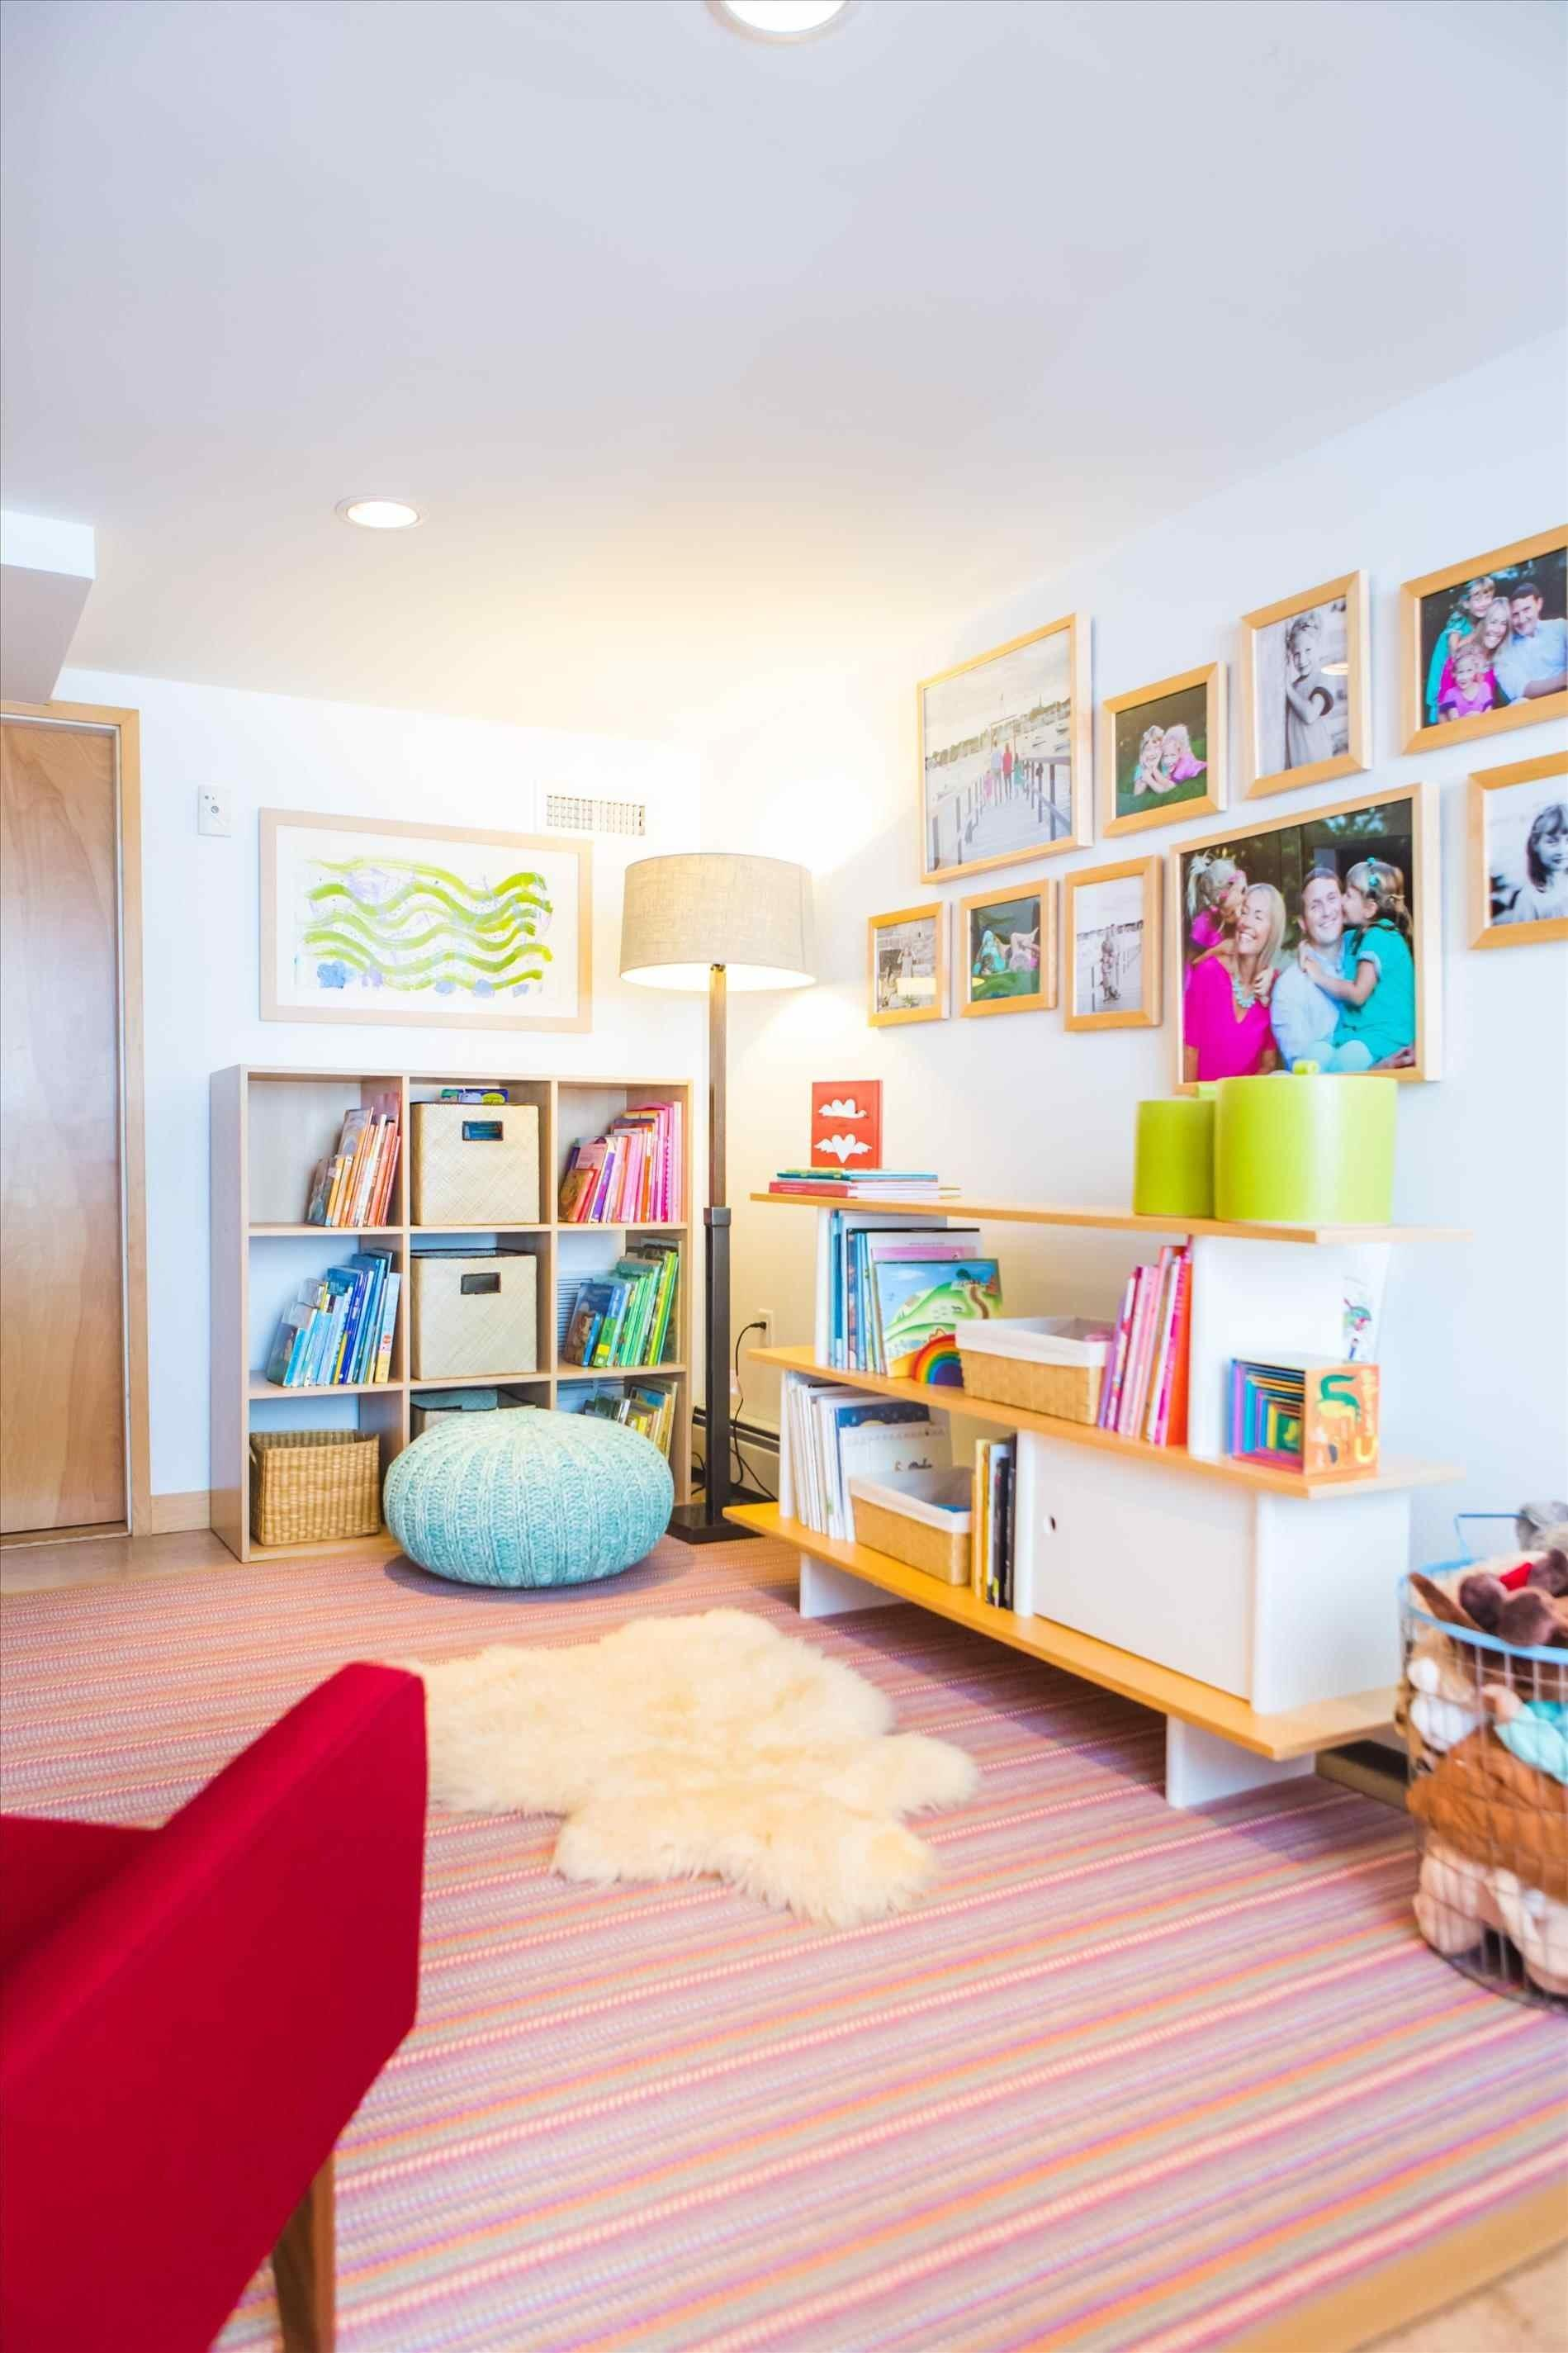 Our Livingturnedsometimesguest Play Kids Playroom